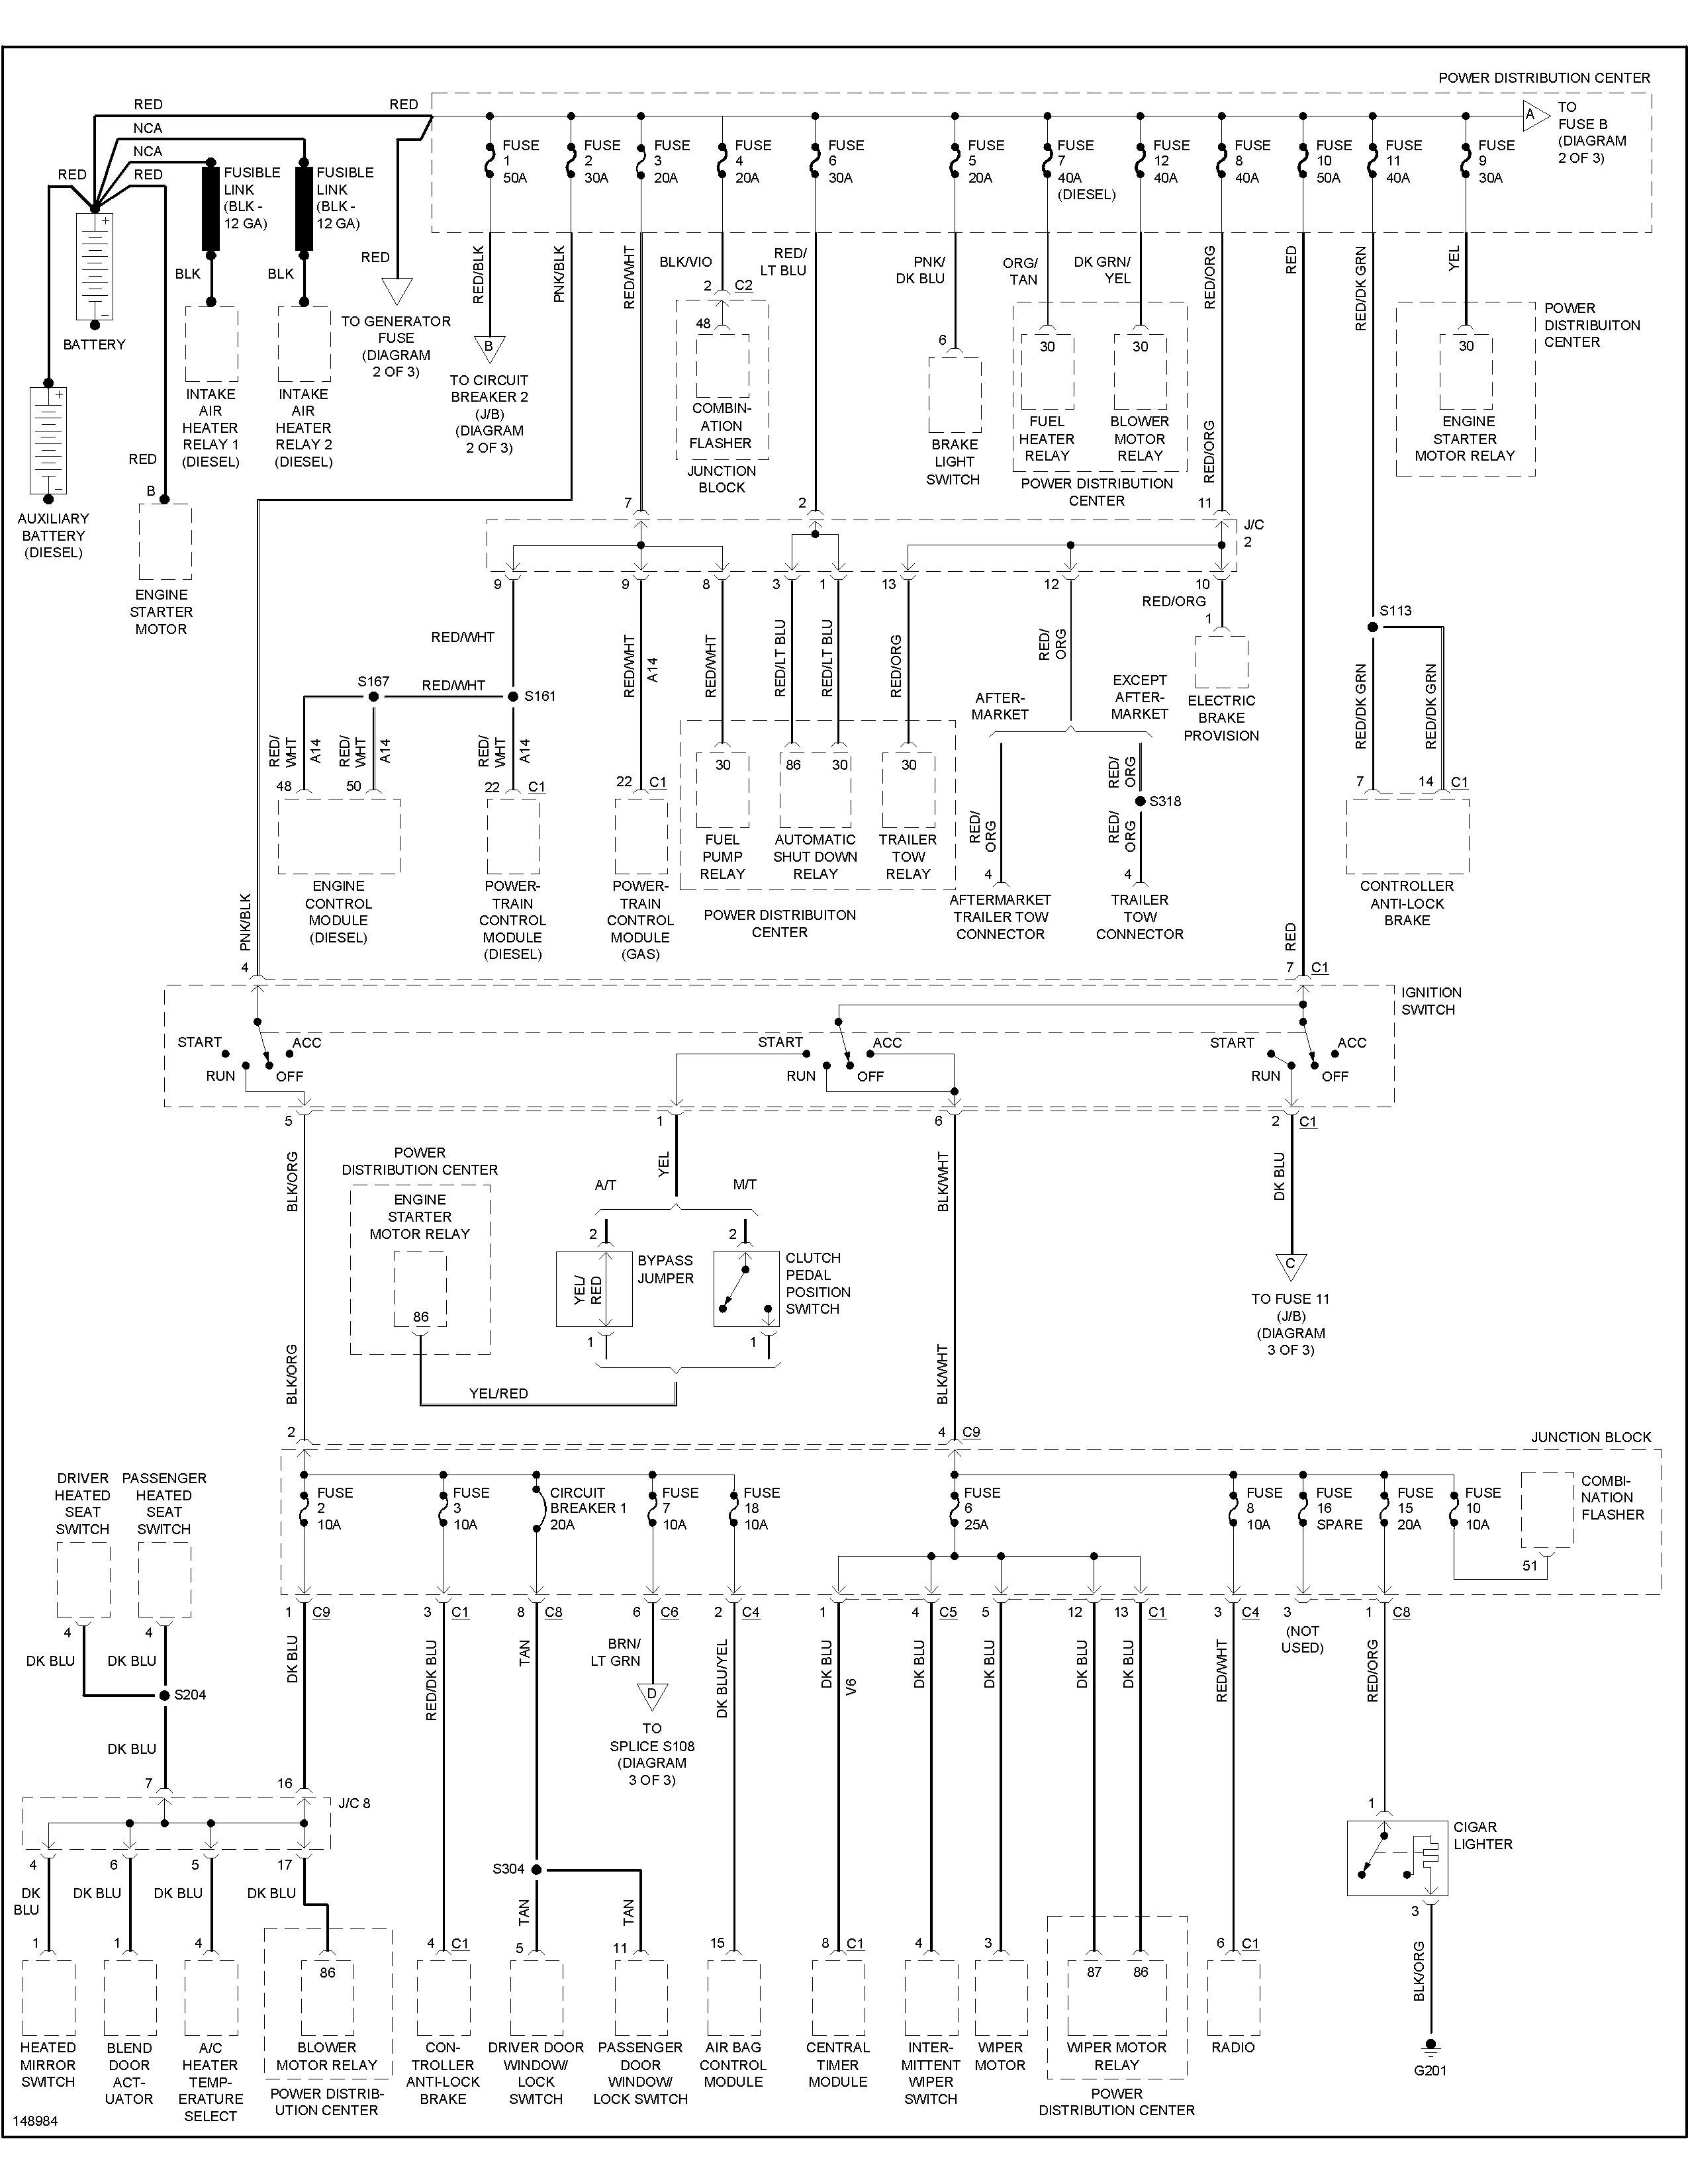 1992 dodge ram cummins 12v into 74 winnie brave  i need a total electrical diagram of the 92 ram